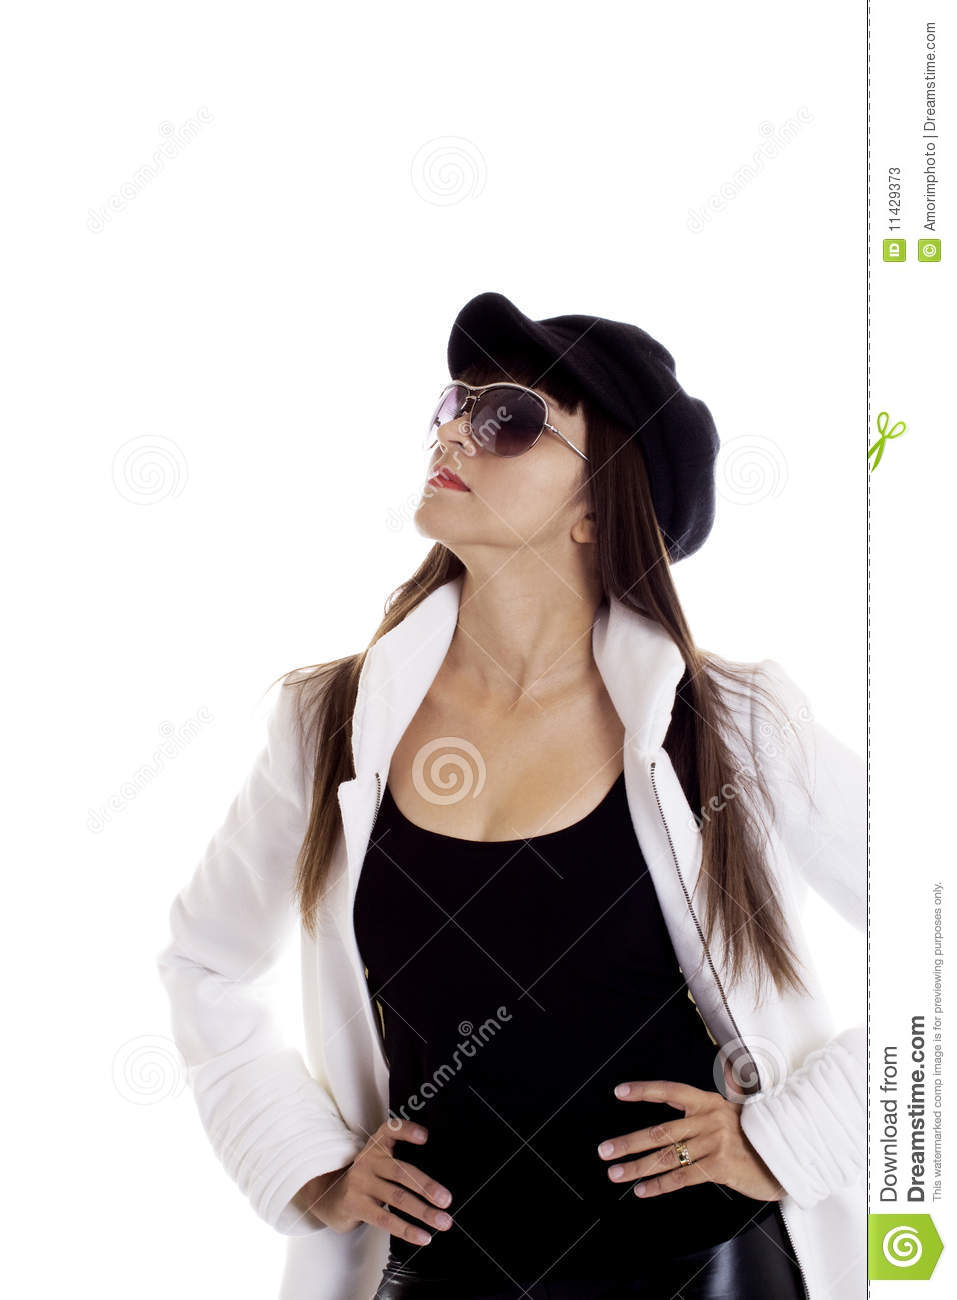 More similar stock images of ` Womens spring fashion